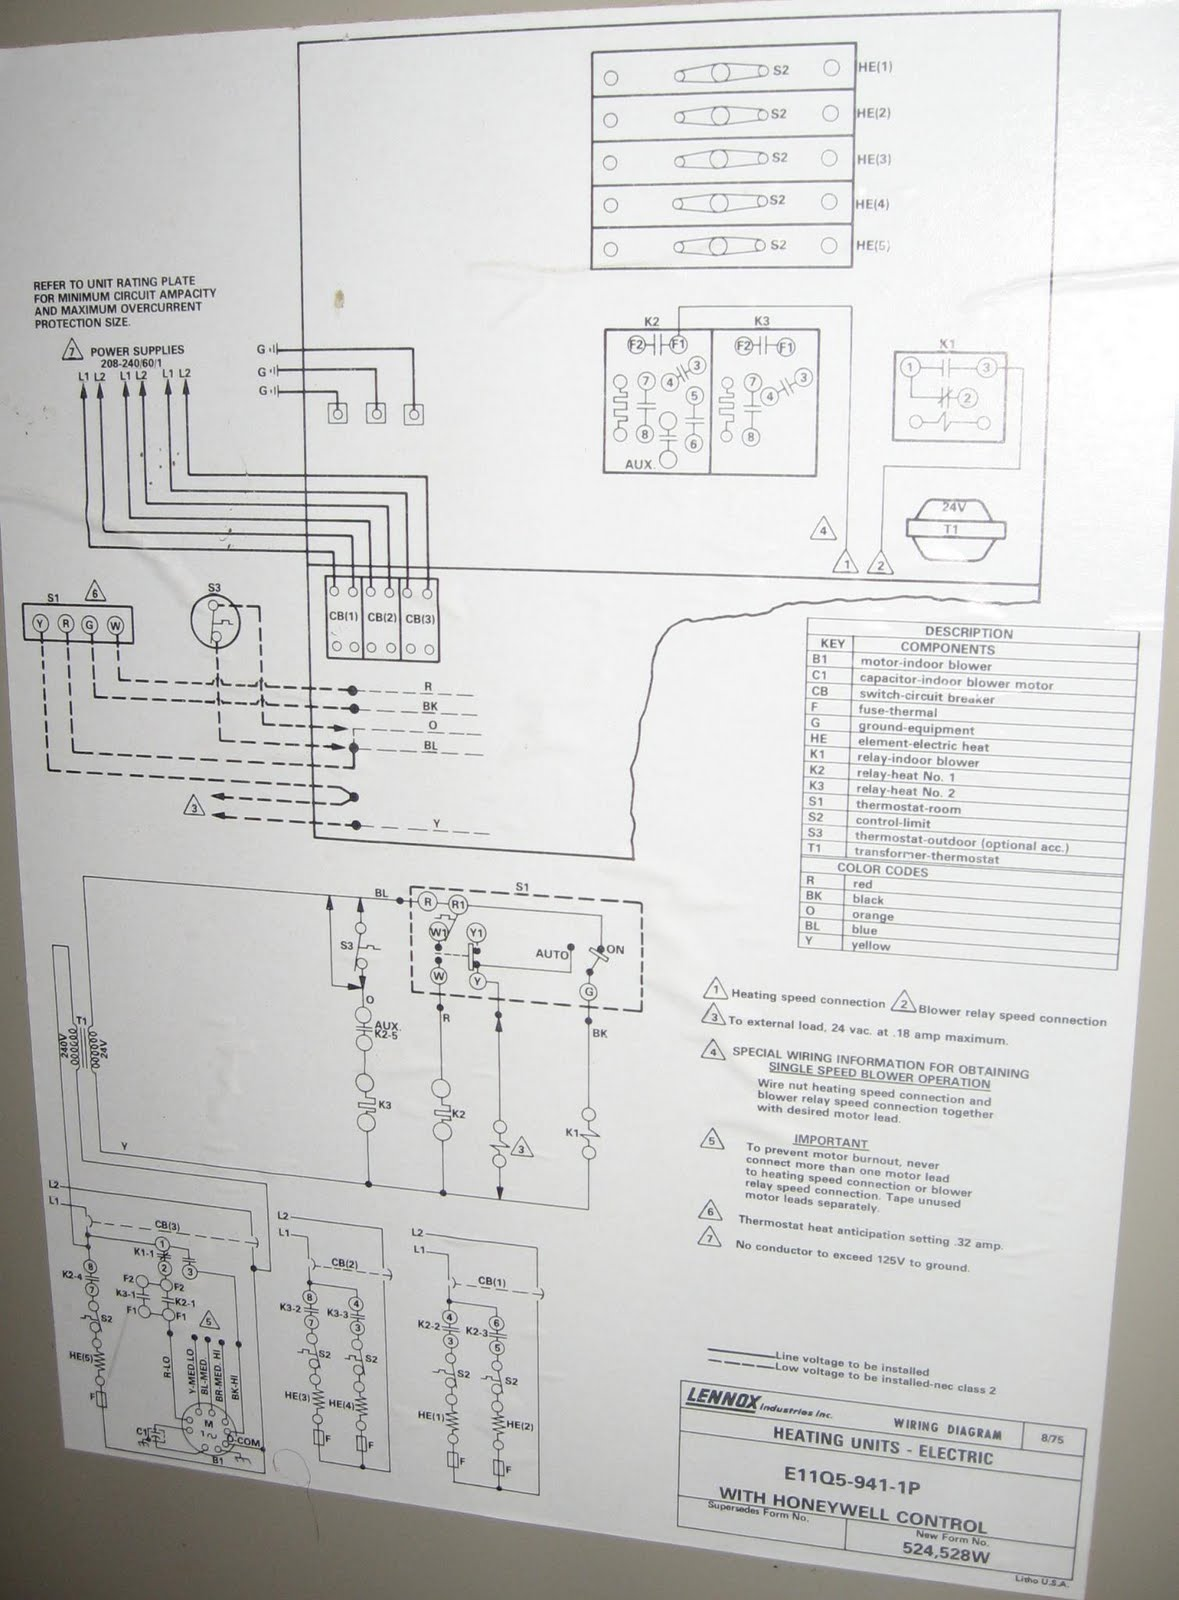 Lennox Wiring sustainability starts at home original electric furnace lennox furnace blower wiring diagram model at eliteediting.co